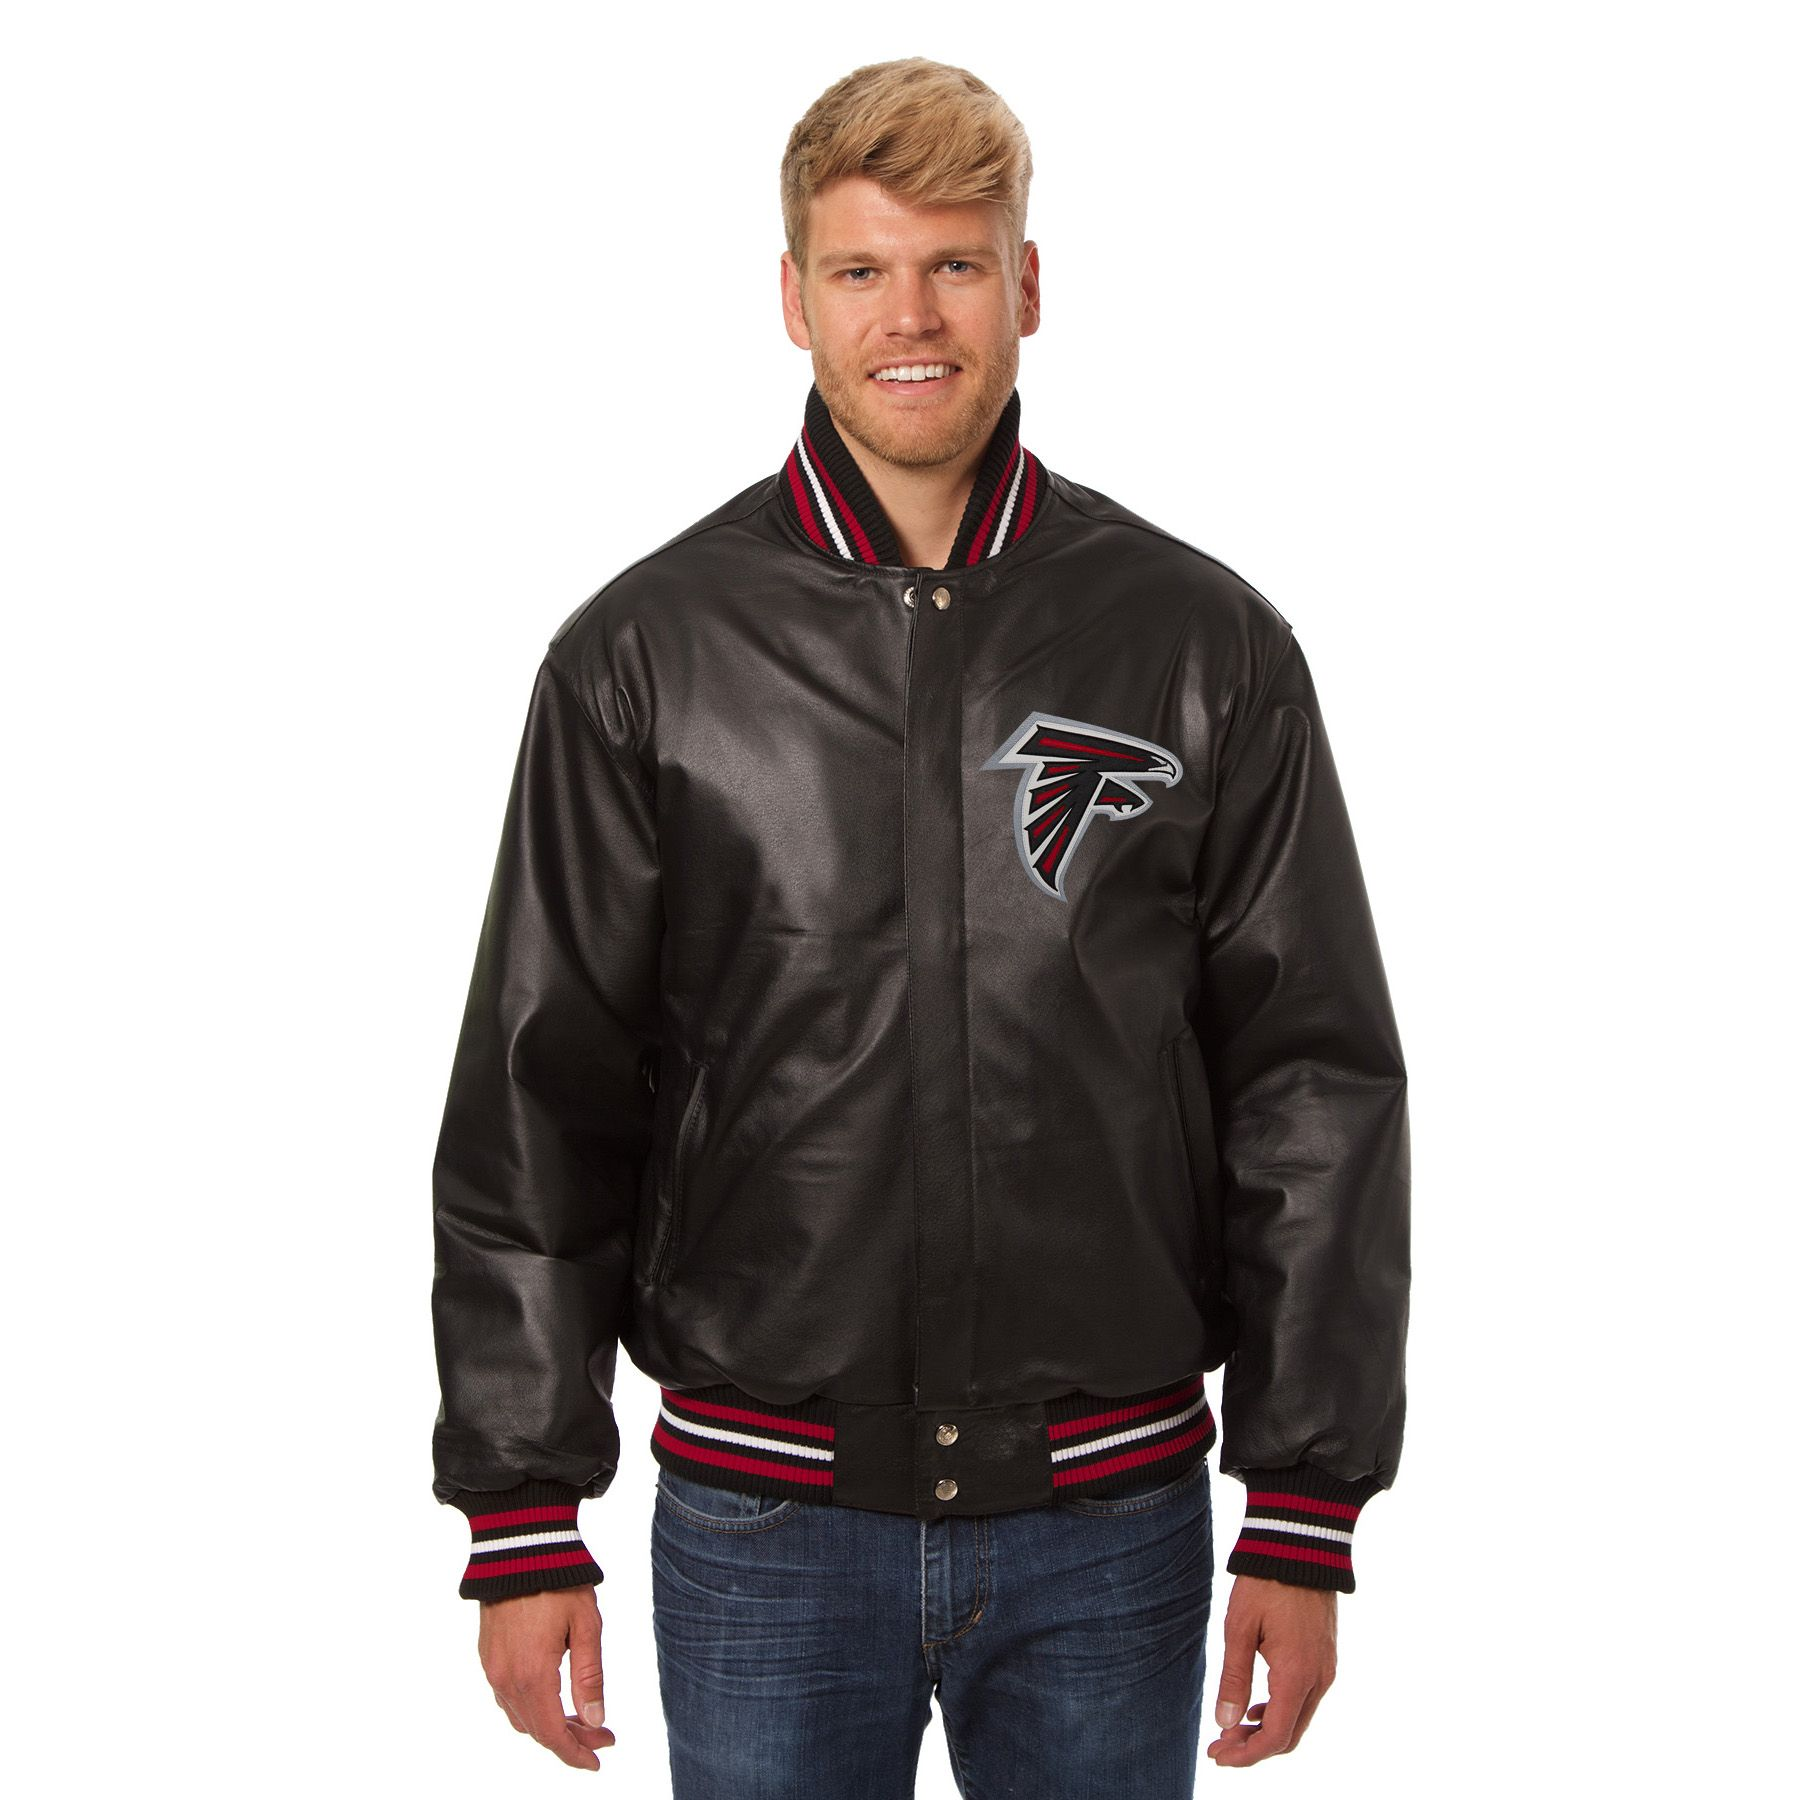 Nfl Atlanta Falcons Jh Design Leather Jacket Black Leather Jacket Black Leather Varsity Jackets Jackets